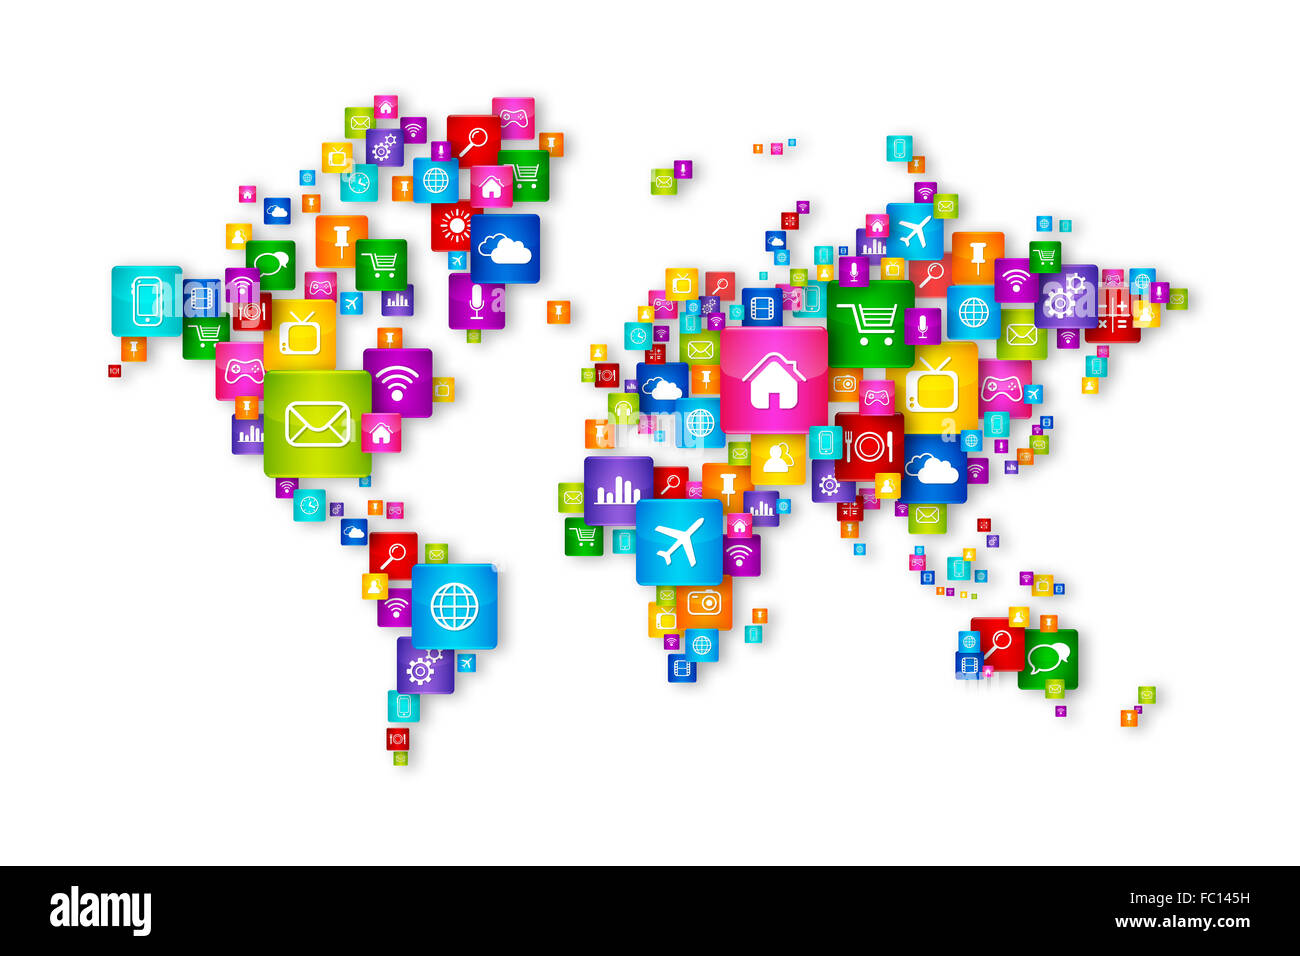 World Map Flying Desktop Icons Collection Stock Photo 93452957 Alamy